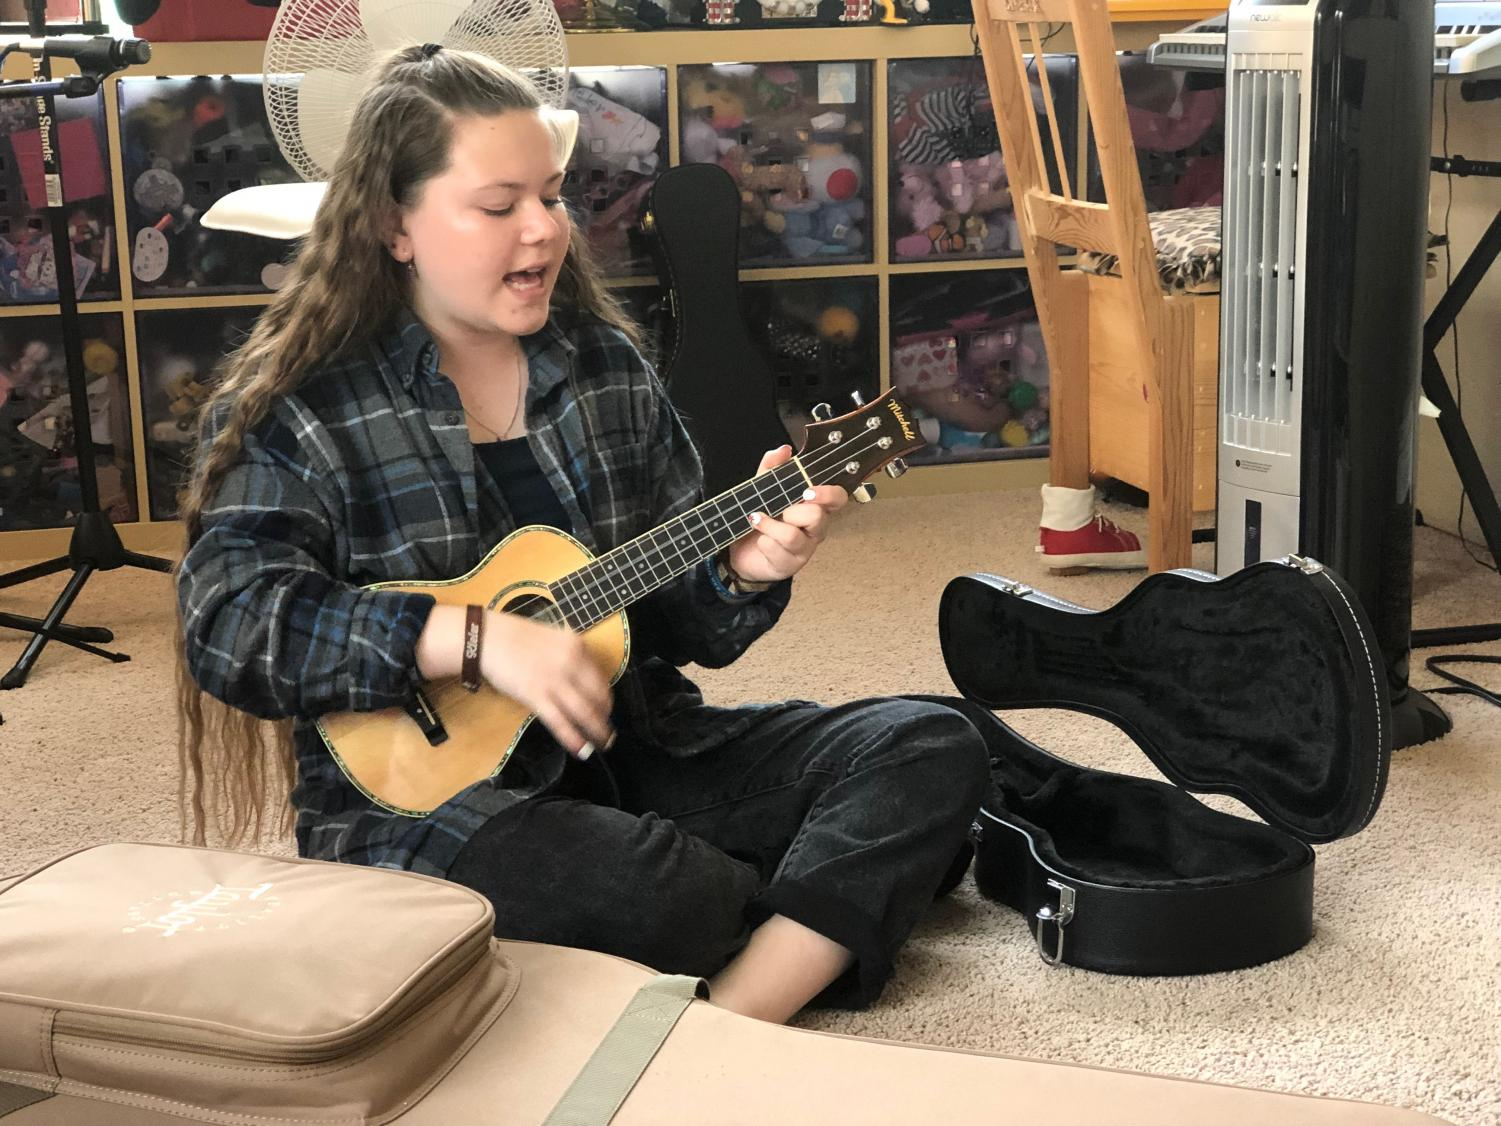 """Bonita Vista Middle school eighth grader, Kieler Muller sings, """"The Reason,"""" by Maddie Poppe while playing her ukulele. This room in her house is where she normally practices one of the four instruments she is self-taught in: guitar, piano, ukulele and trumpet."""